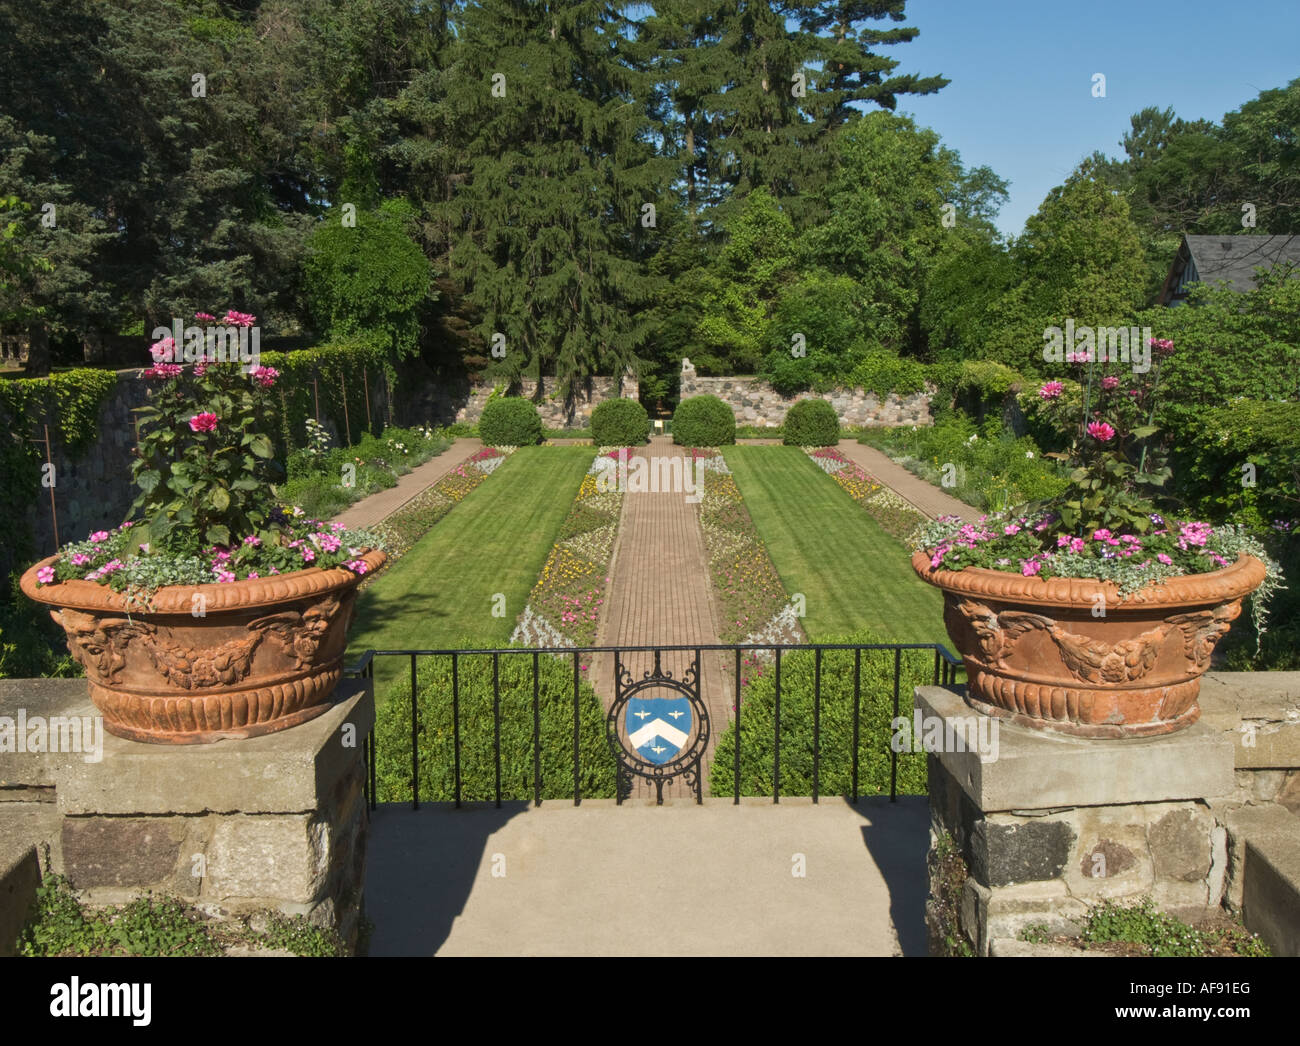 Midwestern Gardens Stock Photos & Midwestern Gardens Stock Images ...